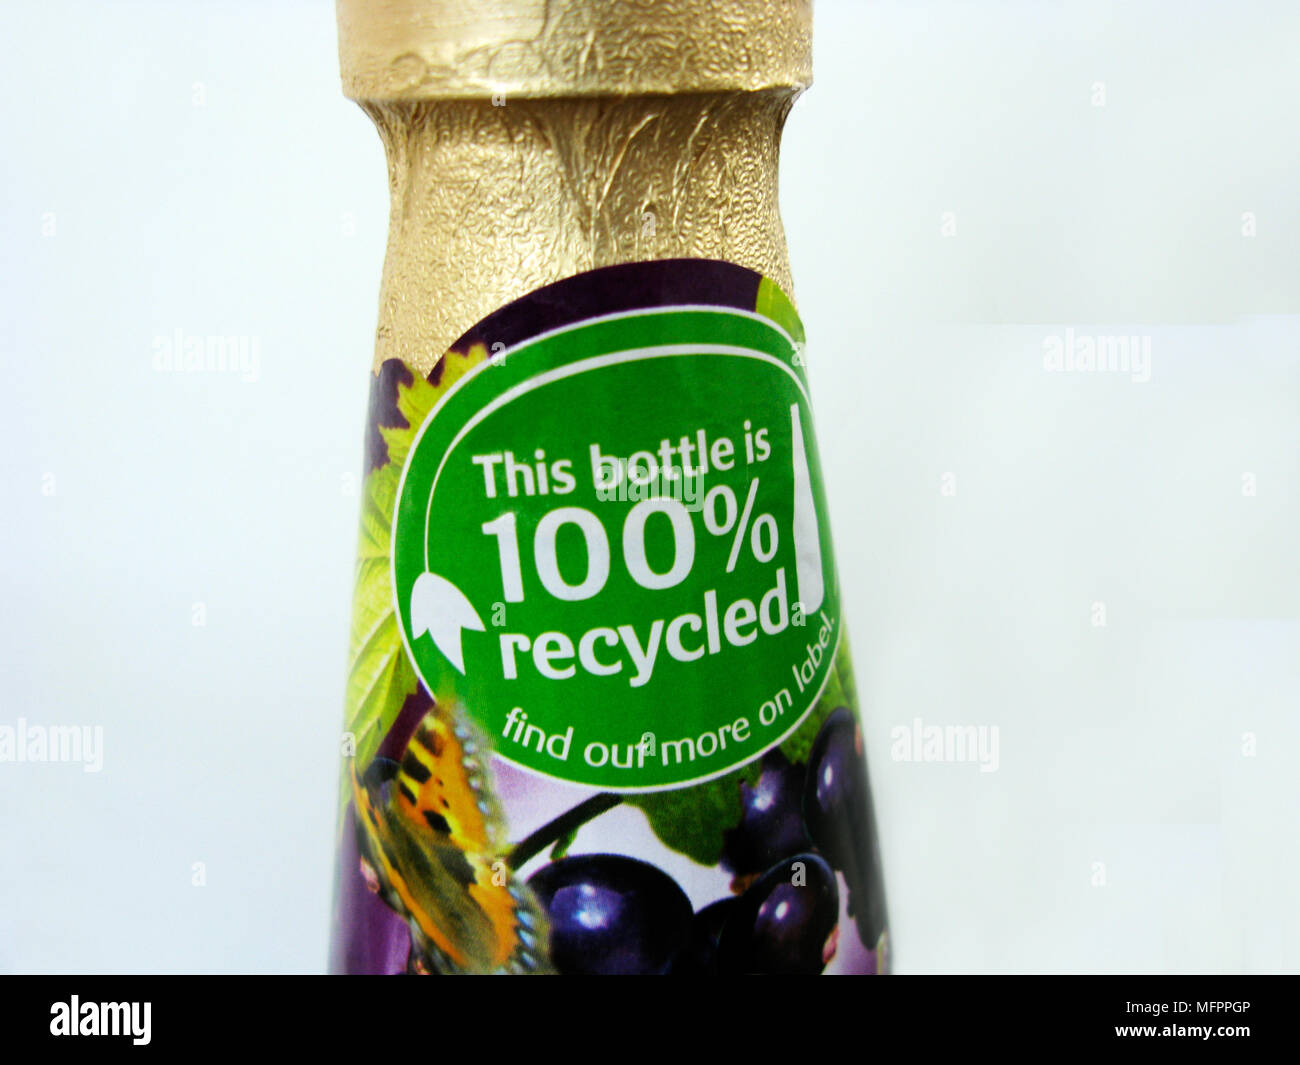 Plastic bottle of juice made from 100% recycled materials - Stock Image